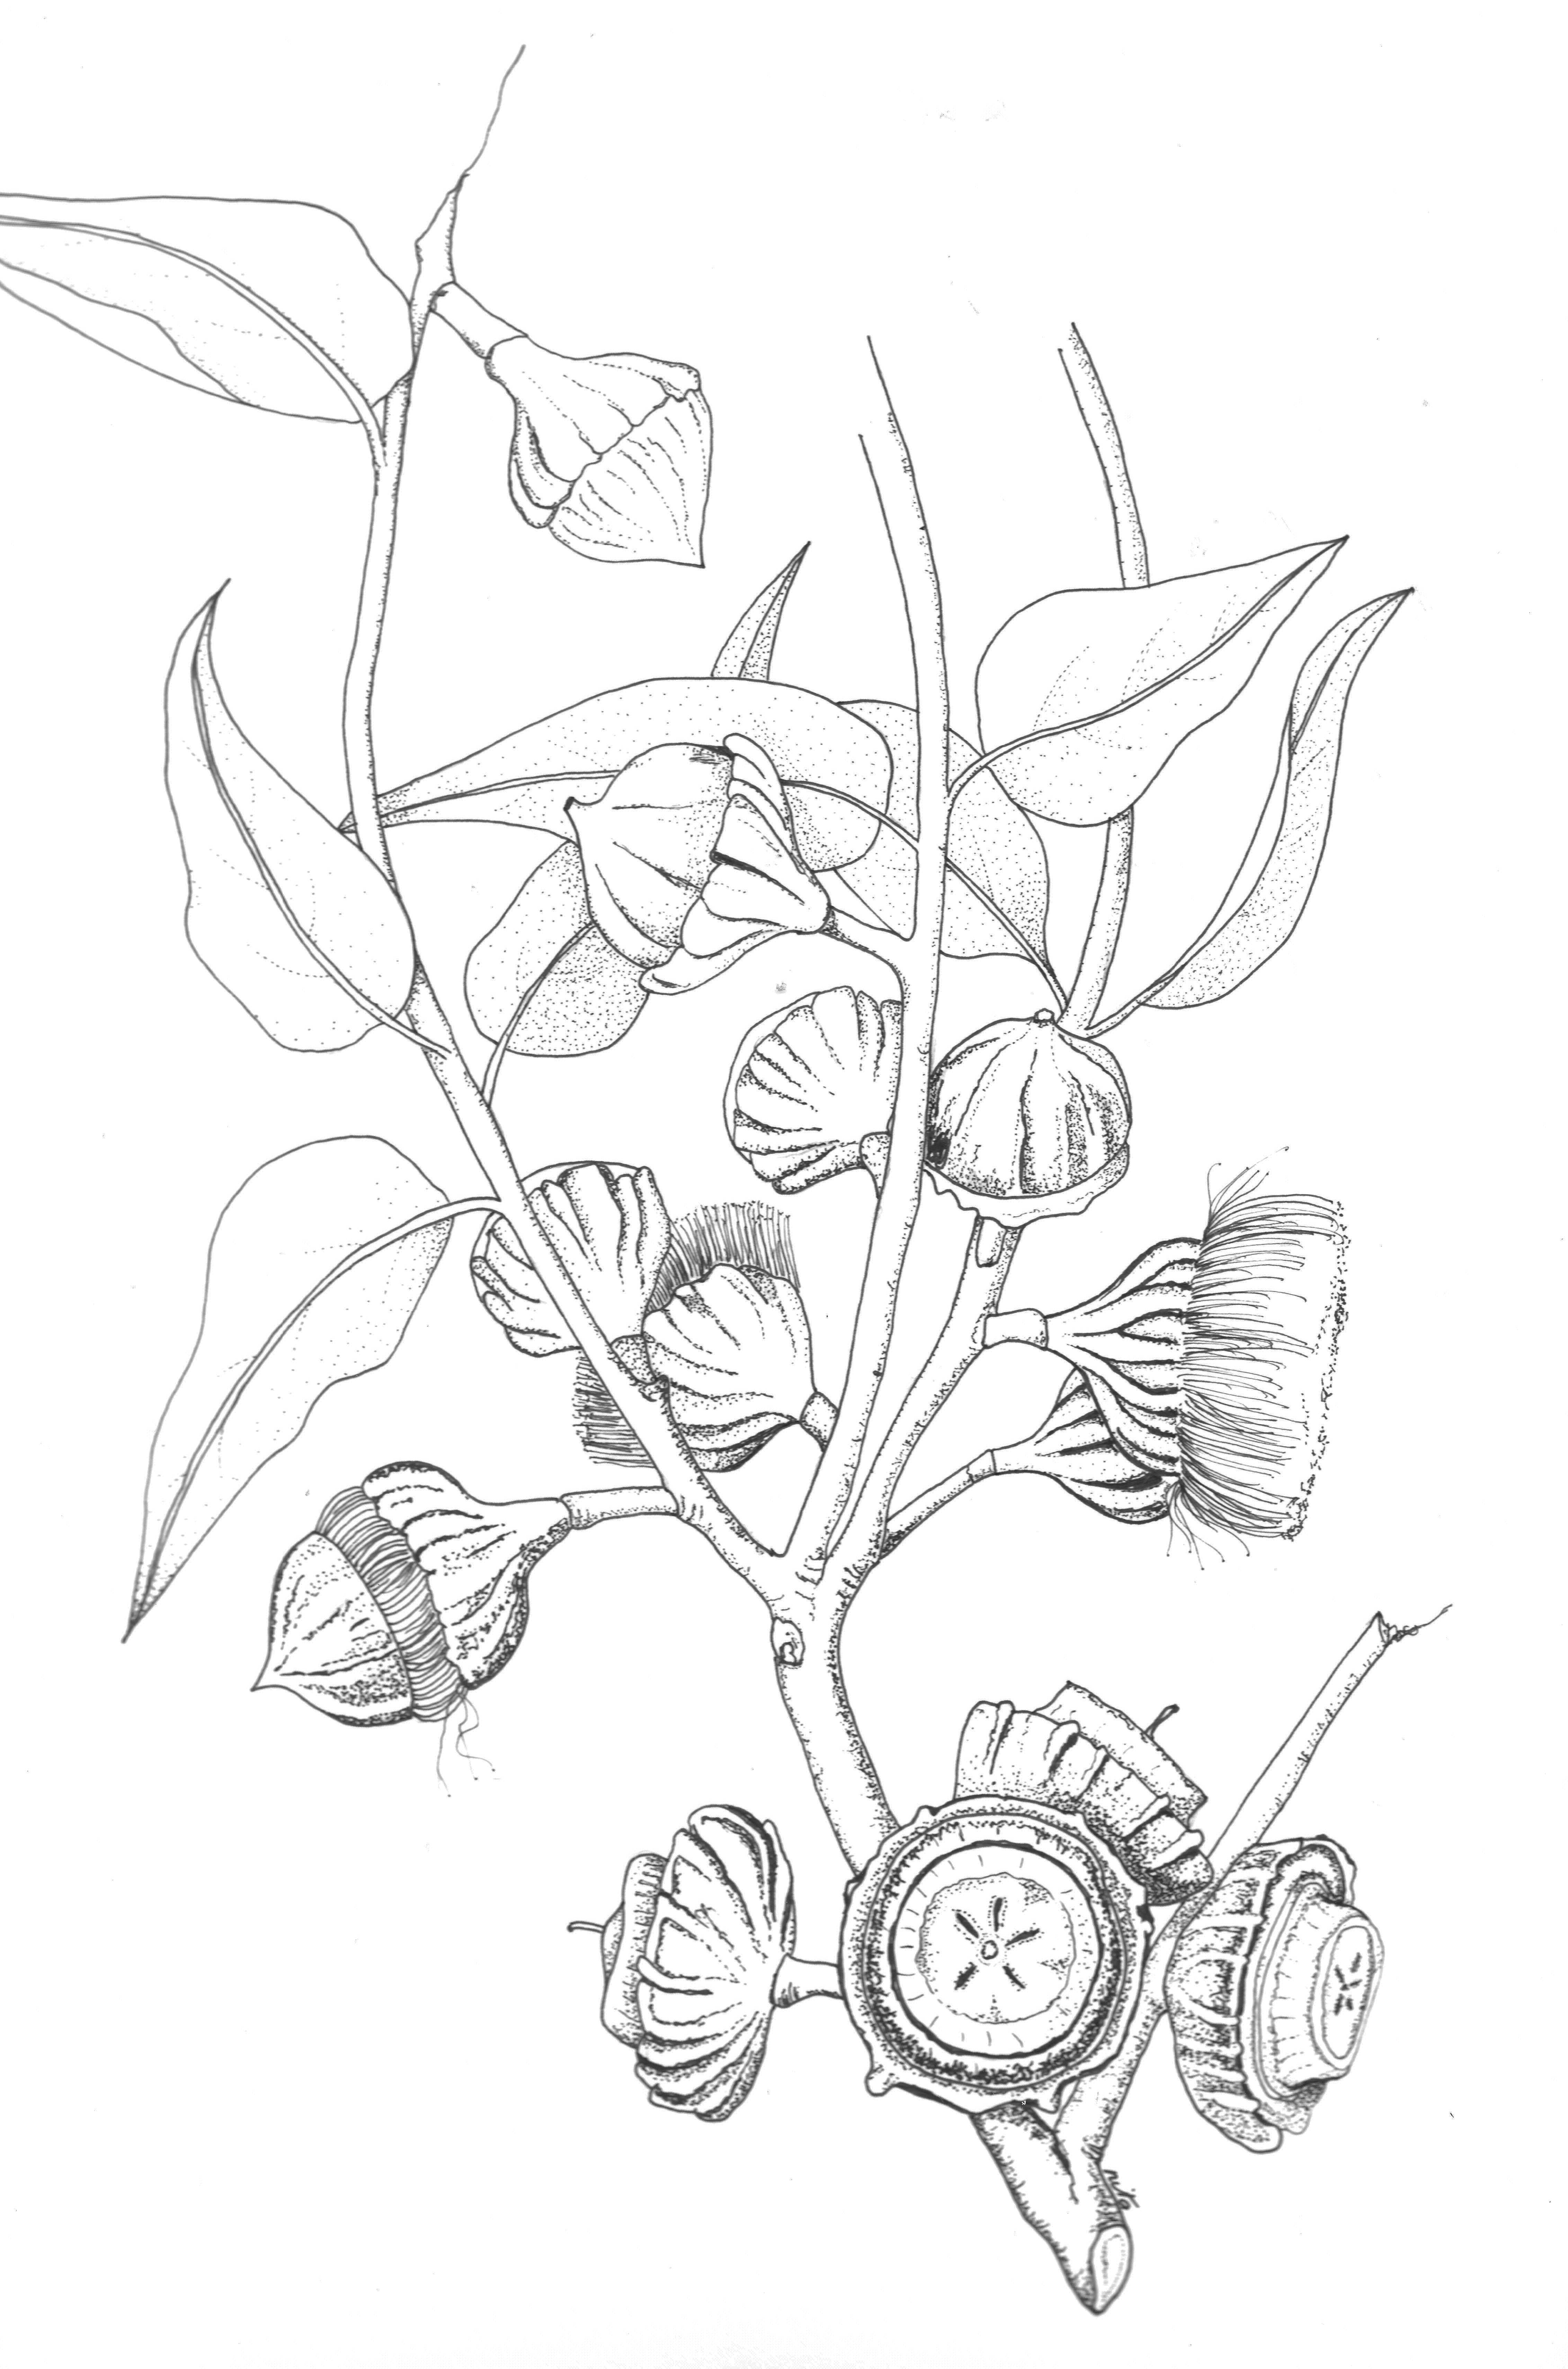 Botanical art coloring book - Eucalyptus Youngiana Pen And Ink Botanical Art 295 Shrink Wrapped Ready For Framing